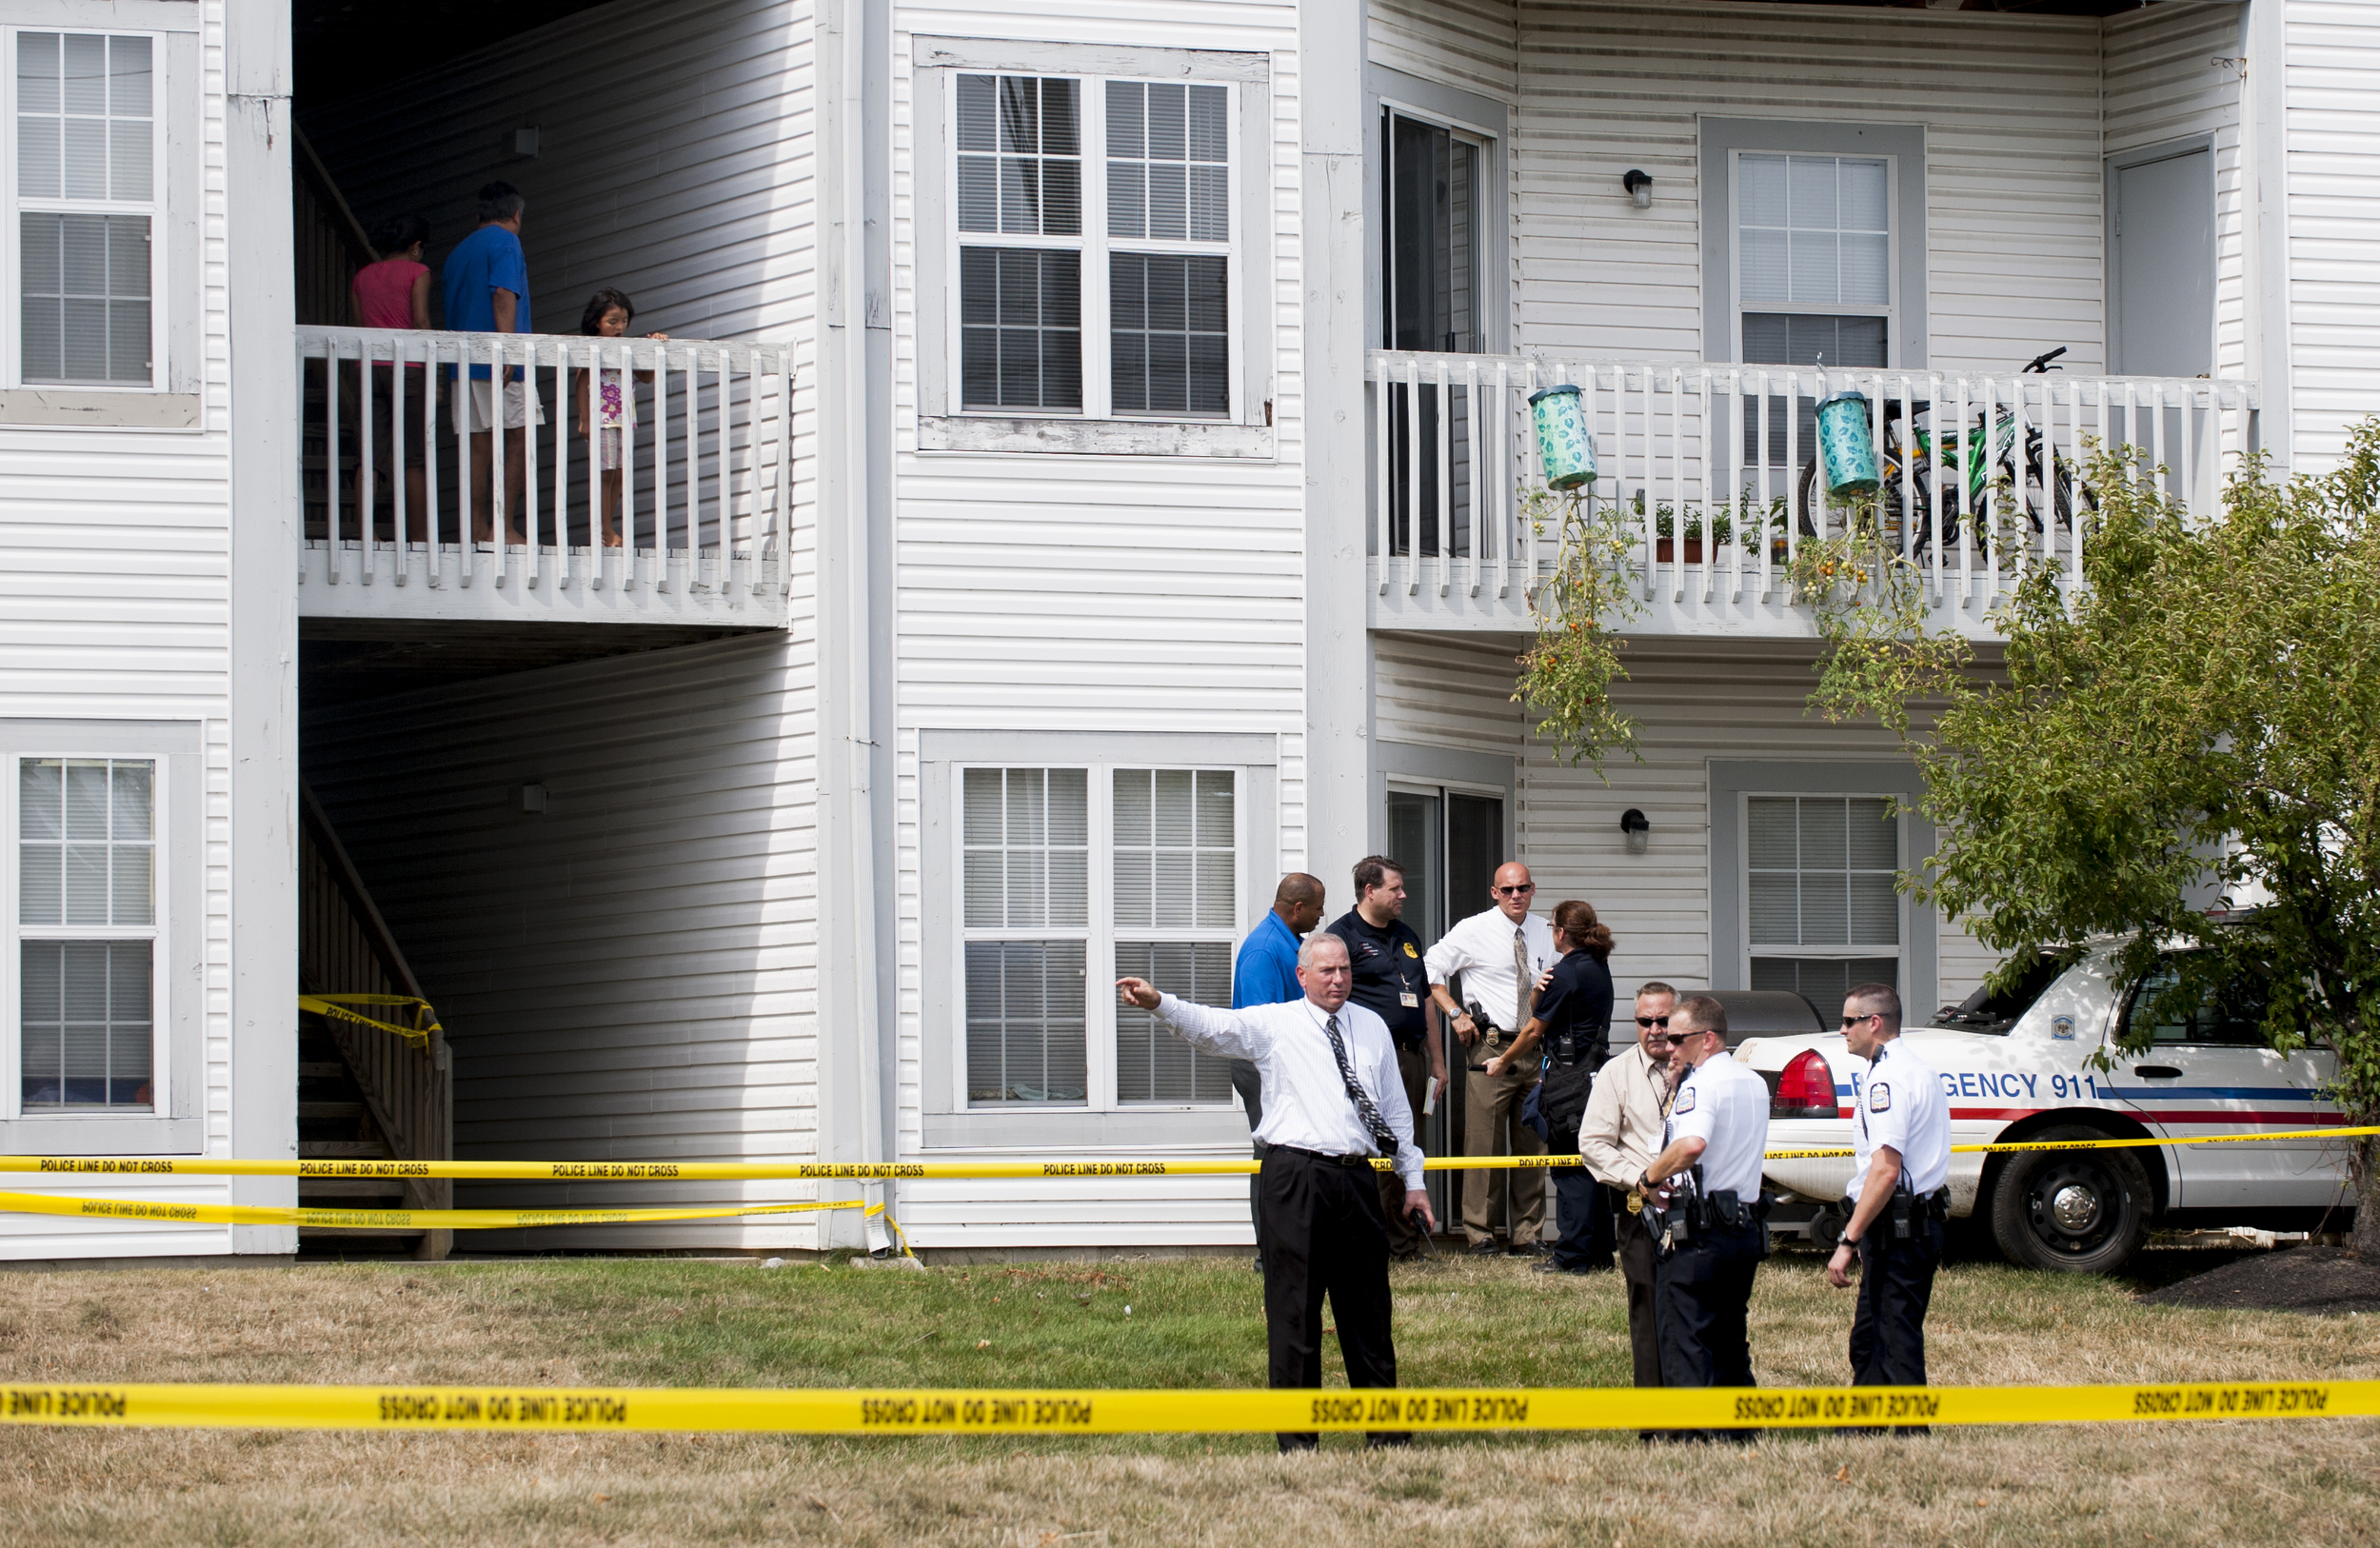 As the demand for heroin rises, and the availability of cheap housing units increases, drug operations that were once exclusive to the inner city are beginning to spill out into the suburban communities. Here, police officers investigate the scene of a home invasion and shootout. As drug dealers expand operations into these formerly untapped markets, competition can erupt into violence as this shootout did in which two people were killed.